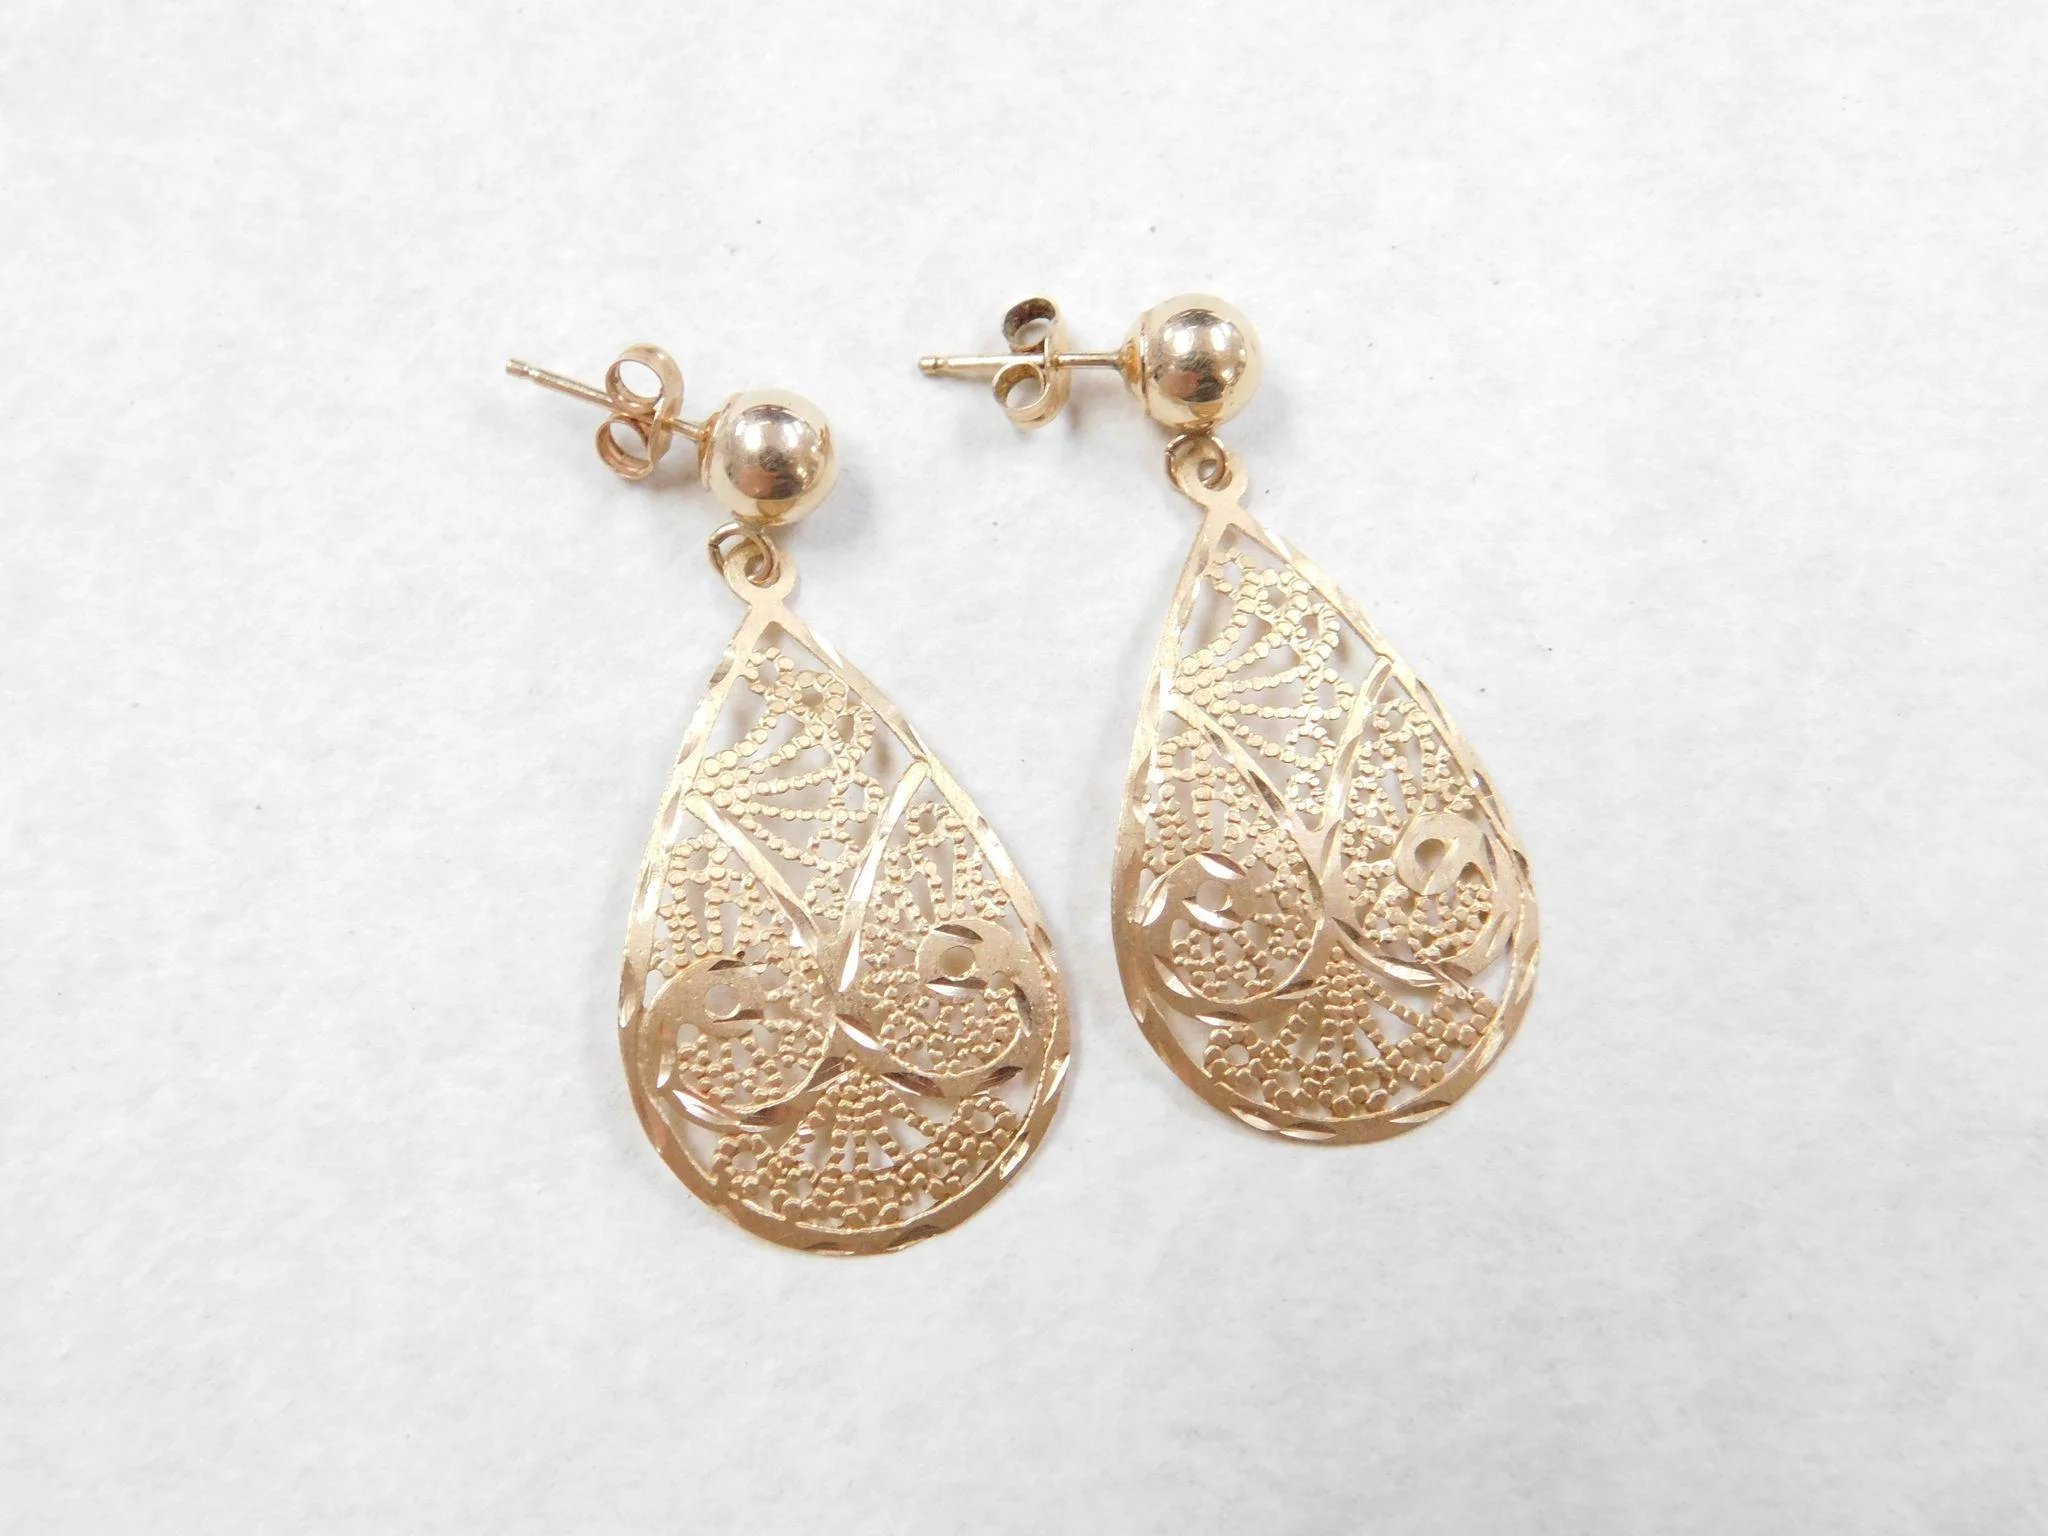 vidal mexican s handmade earrings gloria products filigree